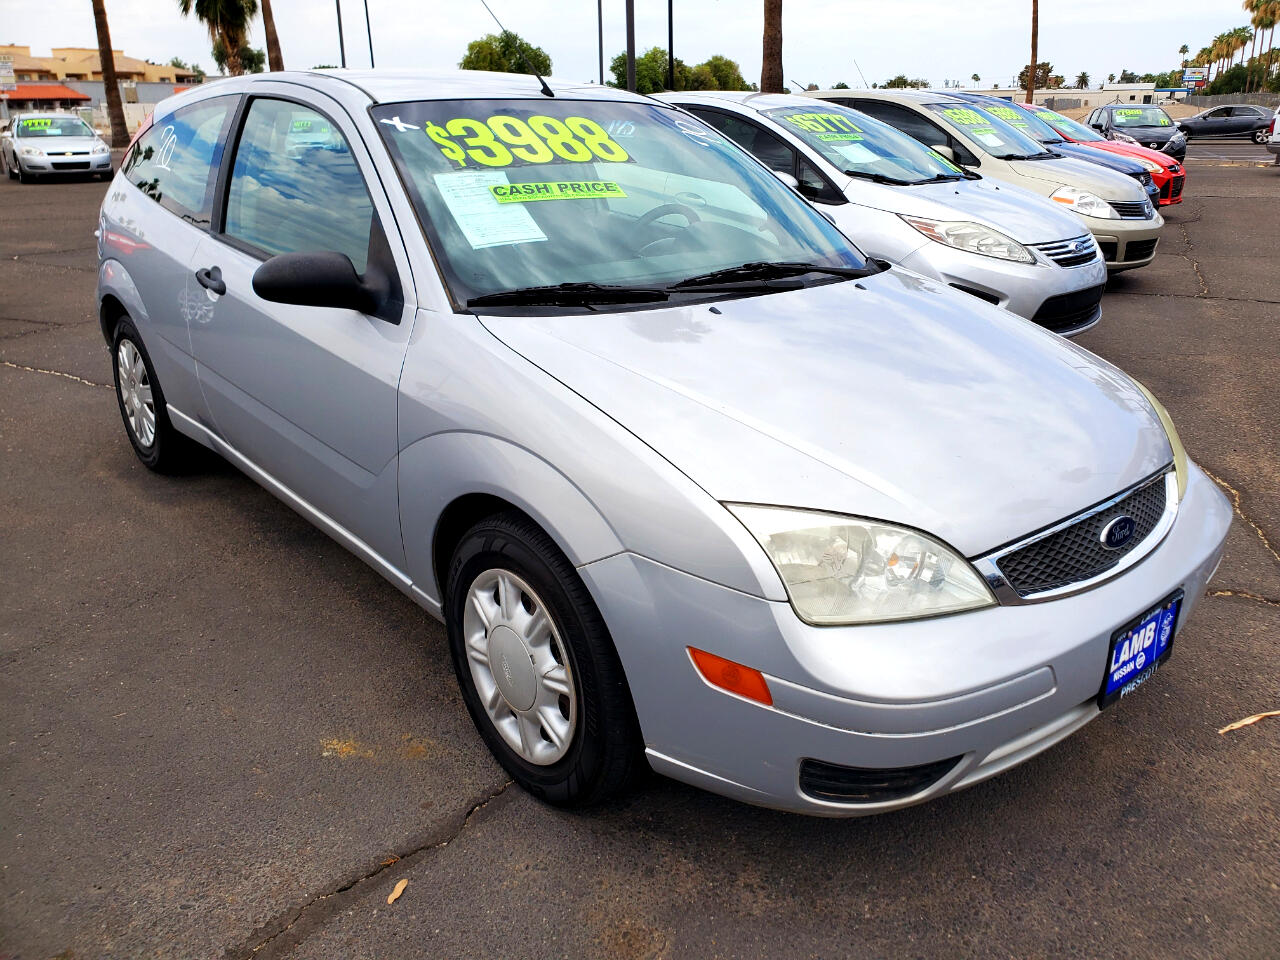 Ford Focus 3dr Cpe ZX3 SES 2005